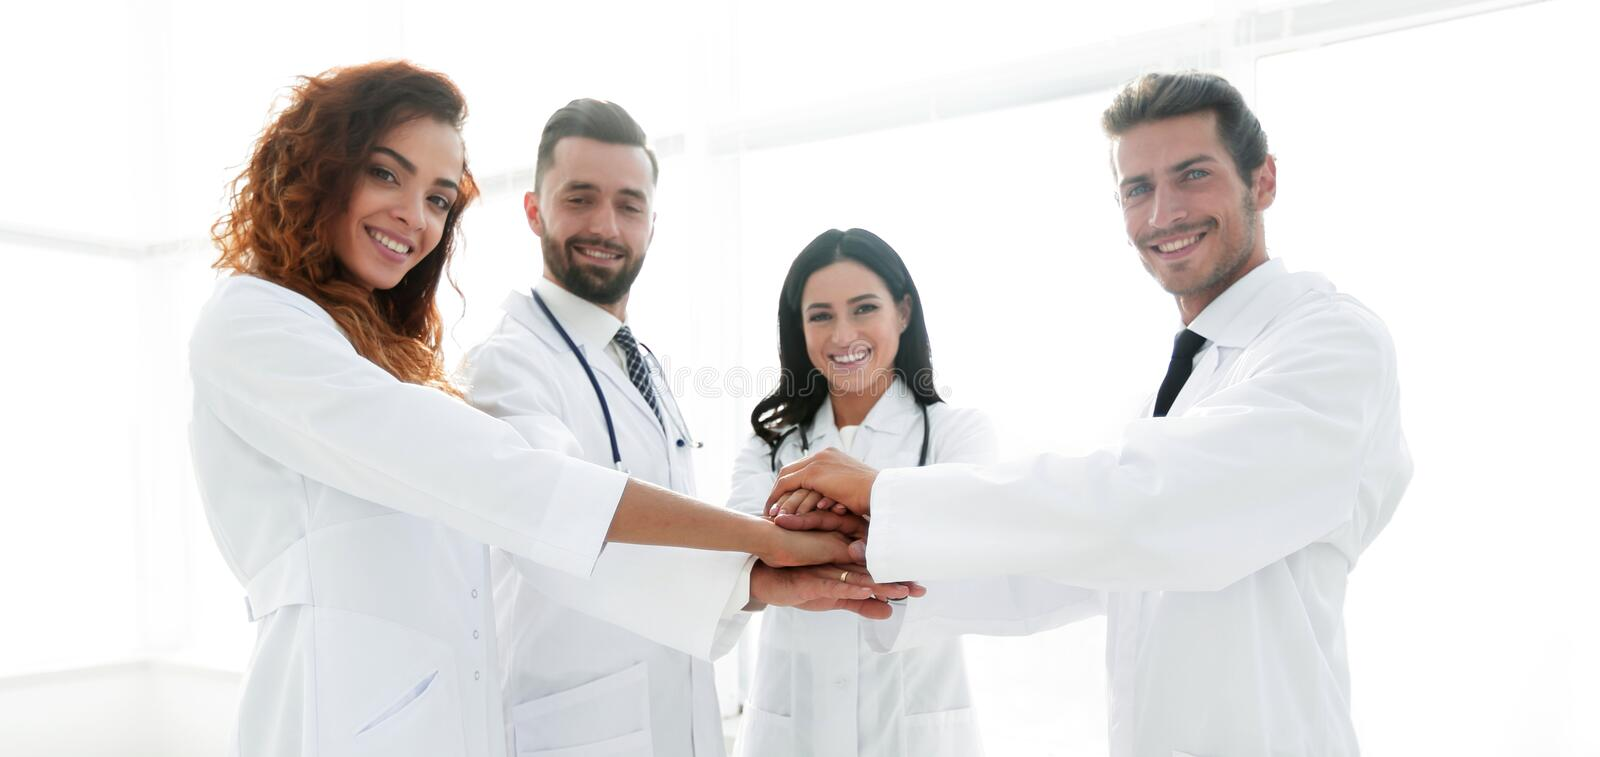 Background image of a group of doctors. The concept of teamwork stock photography